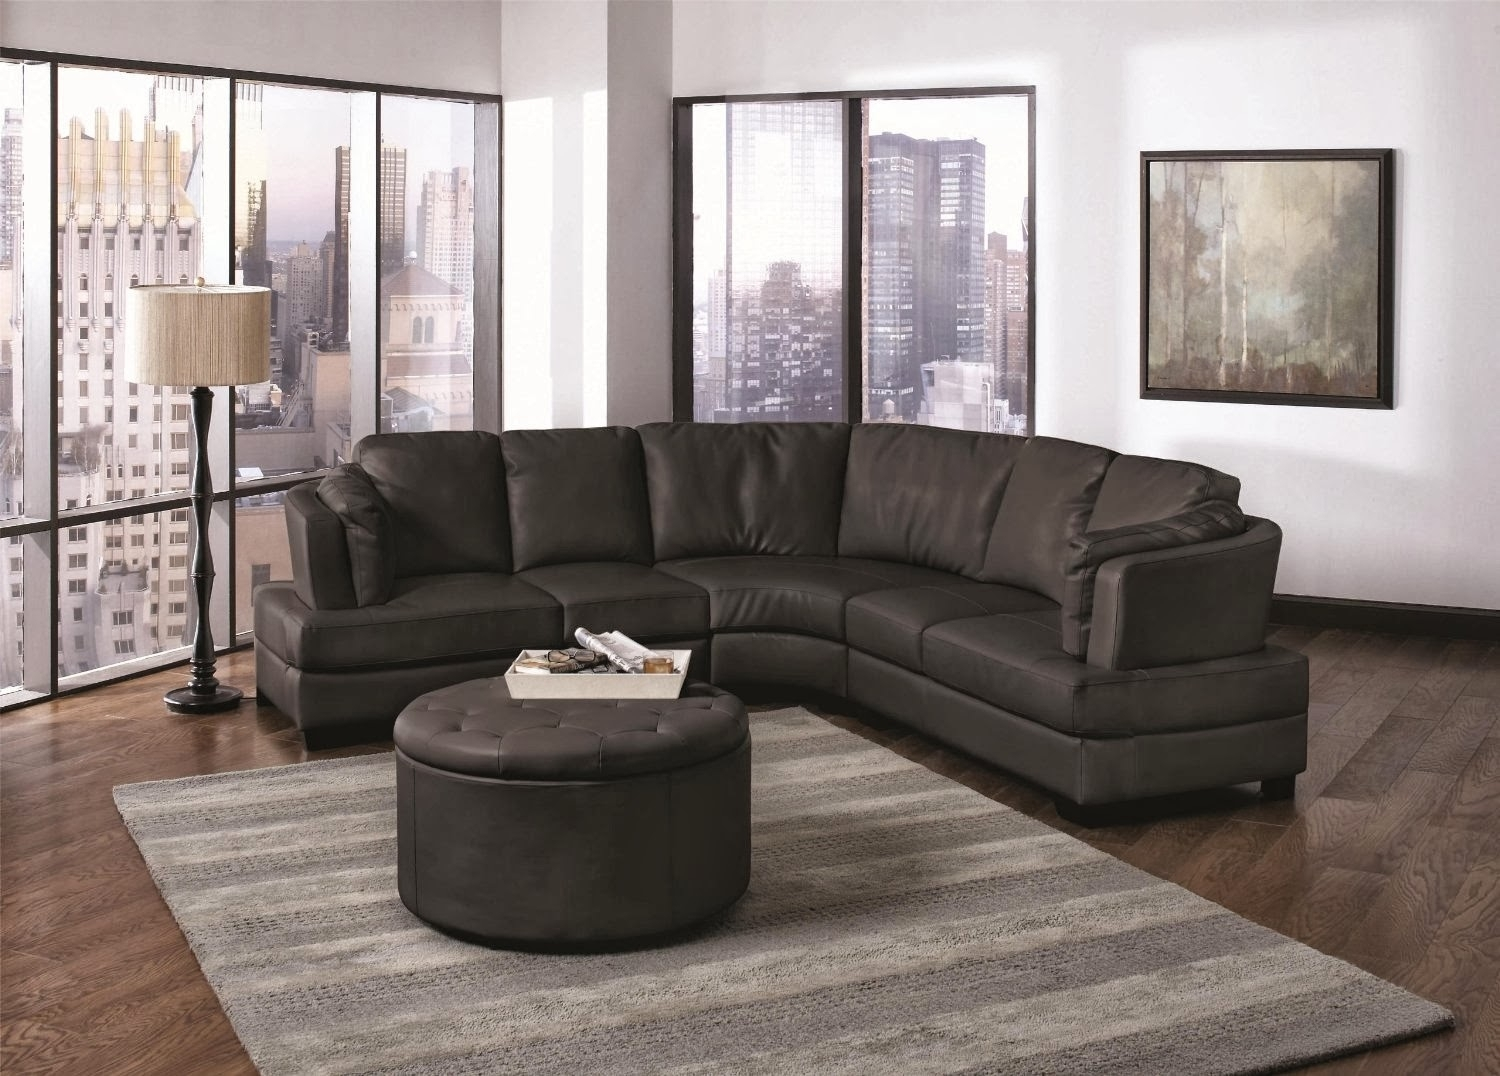 Sectional Sofas Canada Online | Conceptstructuresllc Inside Sectional Sofas In Canada (Image 10 of 10)